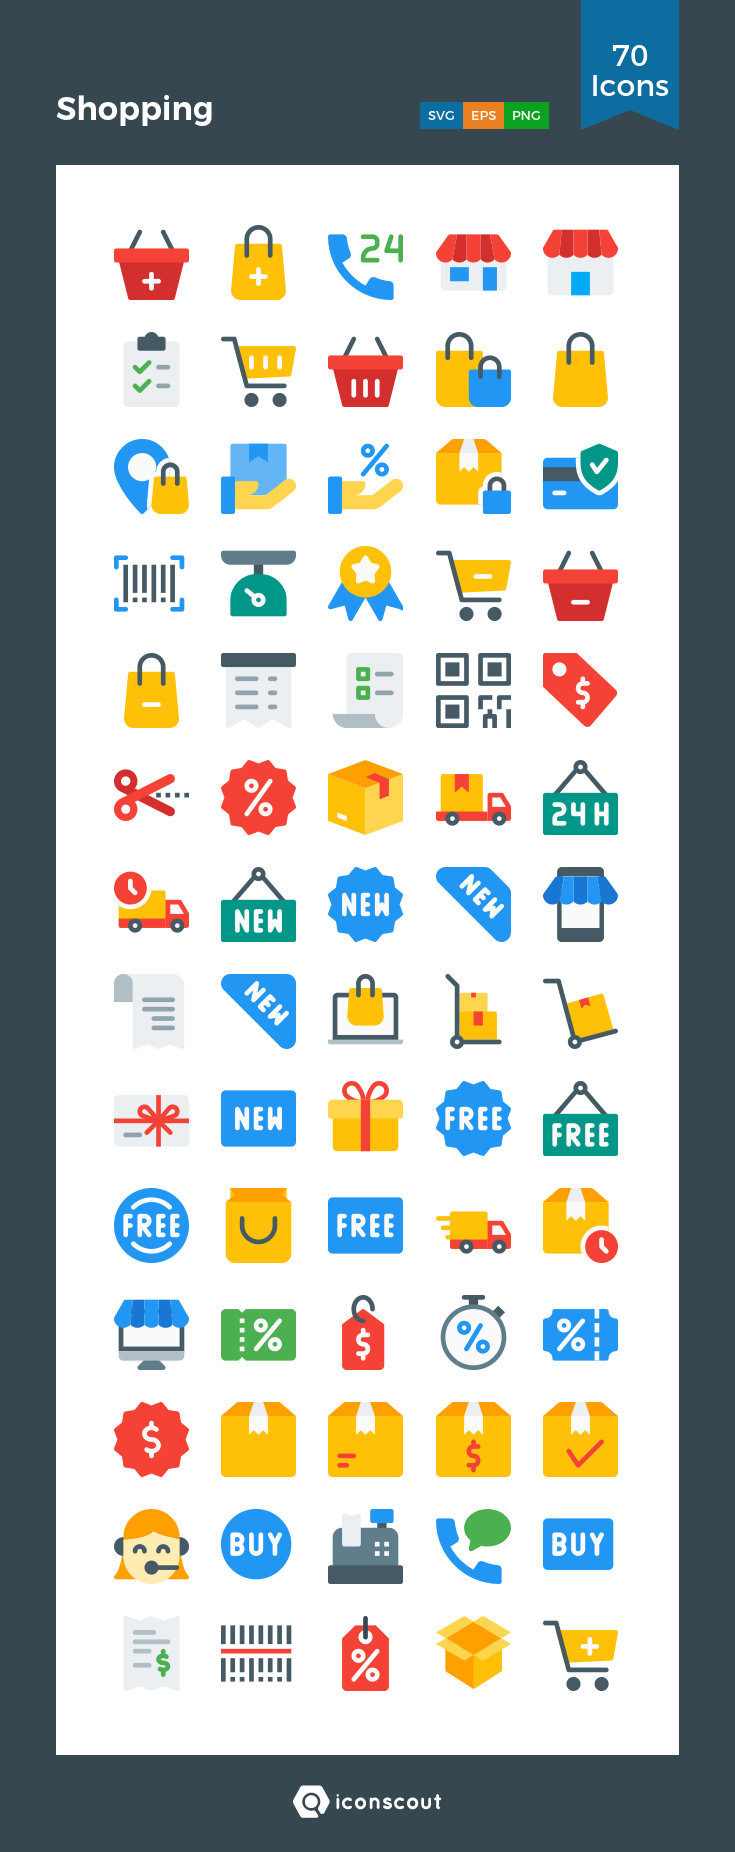 Download Shopping Icon pack Available in SVG, PNG, EPS